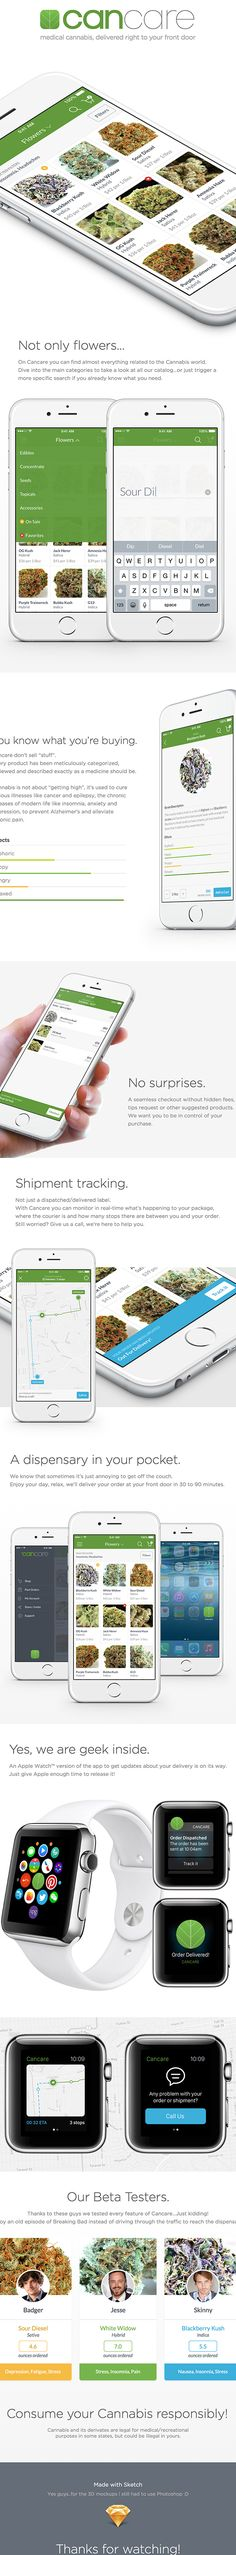 Cancare: medical cannabis, delivered right to your front door.